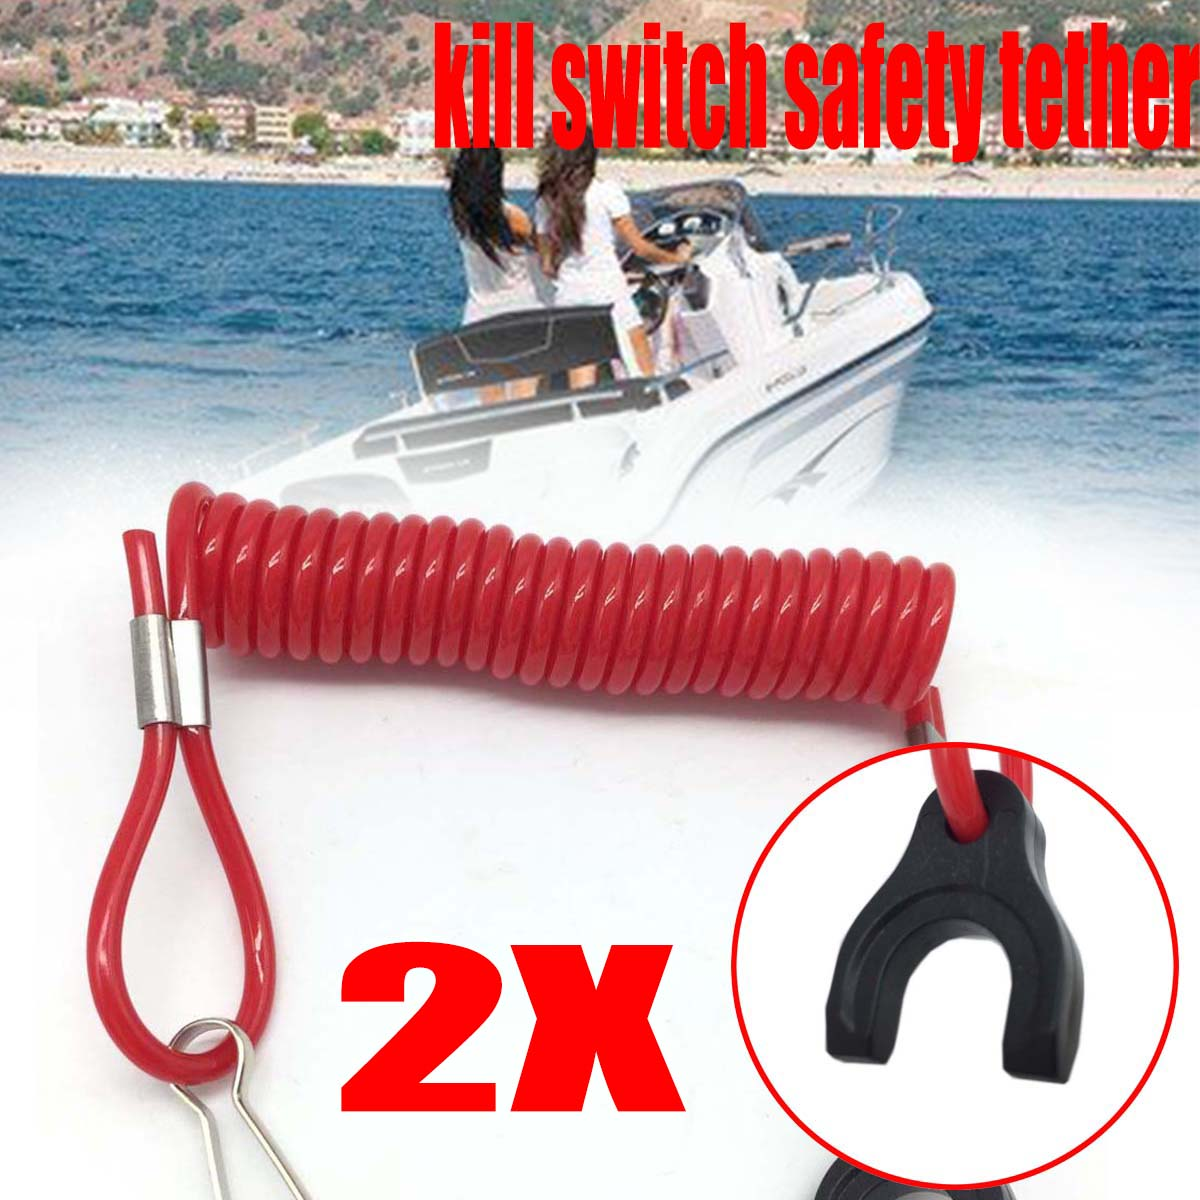 Automobiles & Motorcycles Electrical System 2x Safety Tether Kill Switch For Mariner For Mercury Tohatsu Motorboat Marine Lanyard Outboards Engine Kill Cord Switch Key Rope